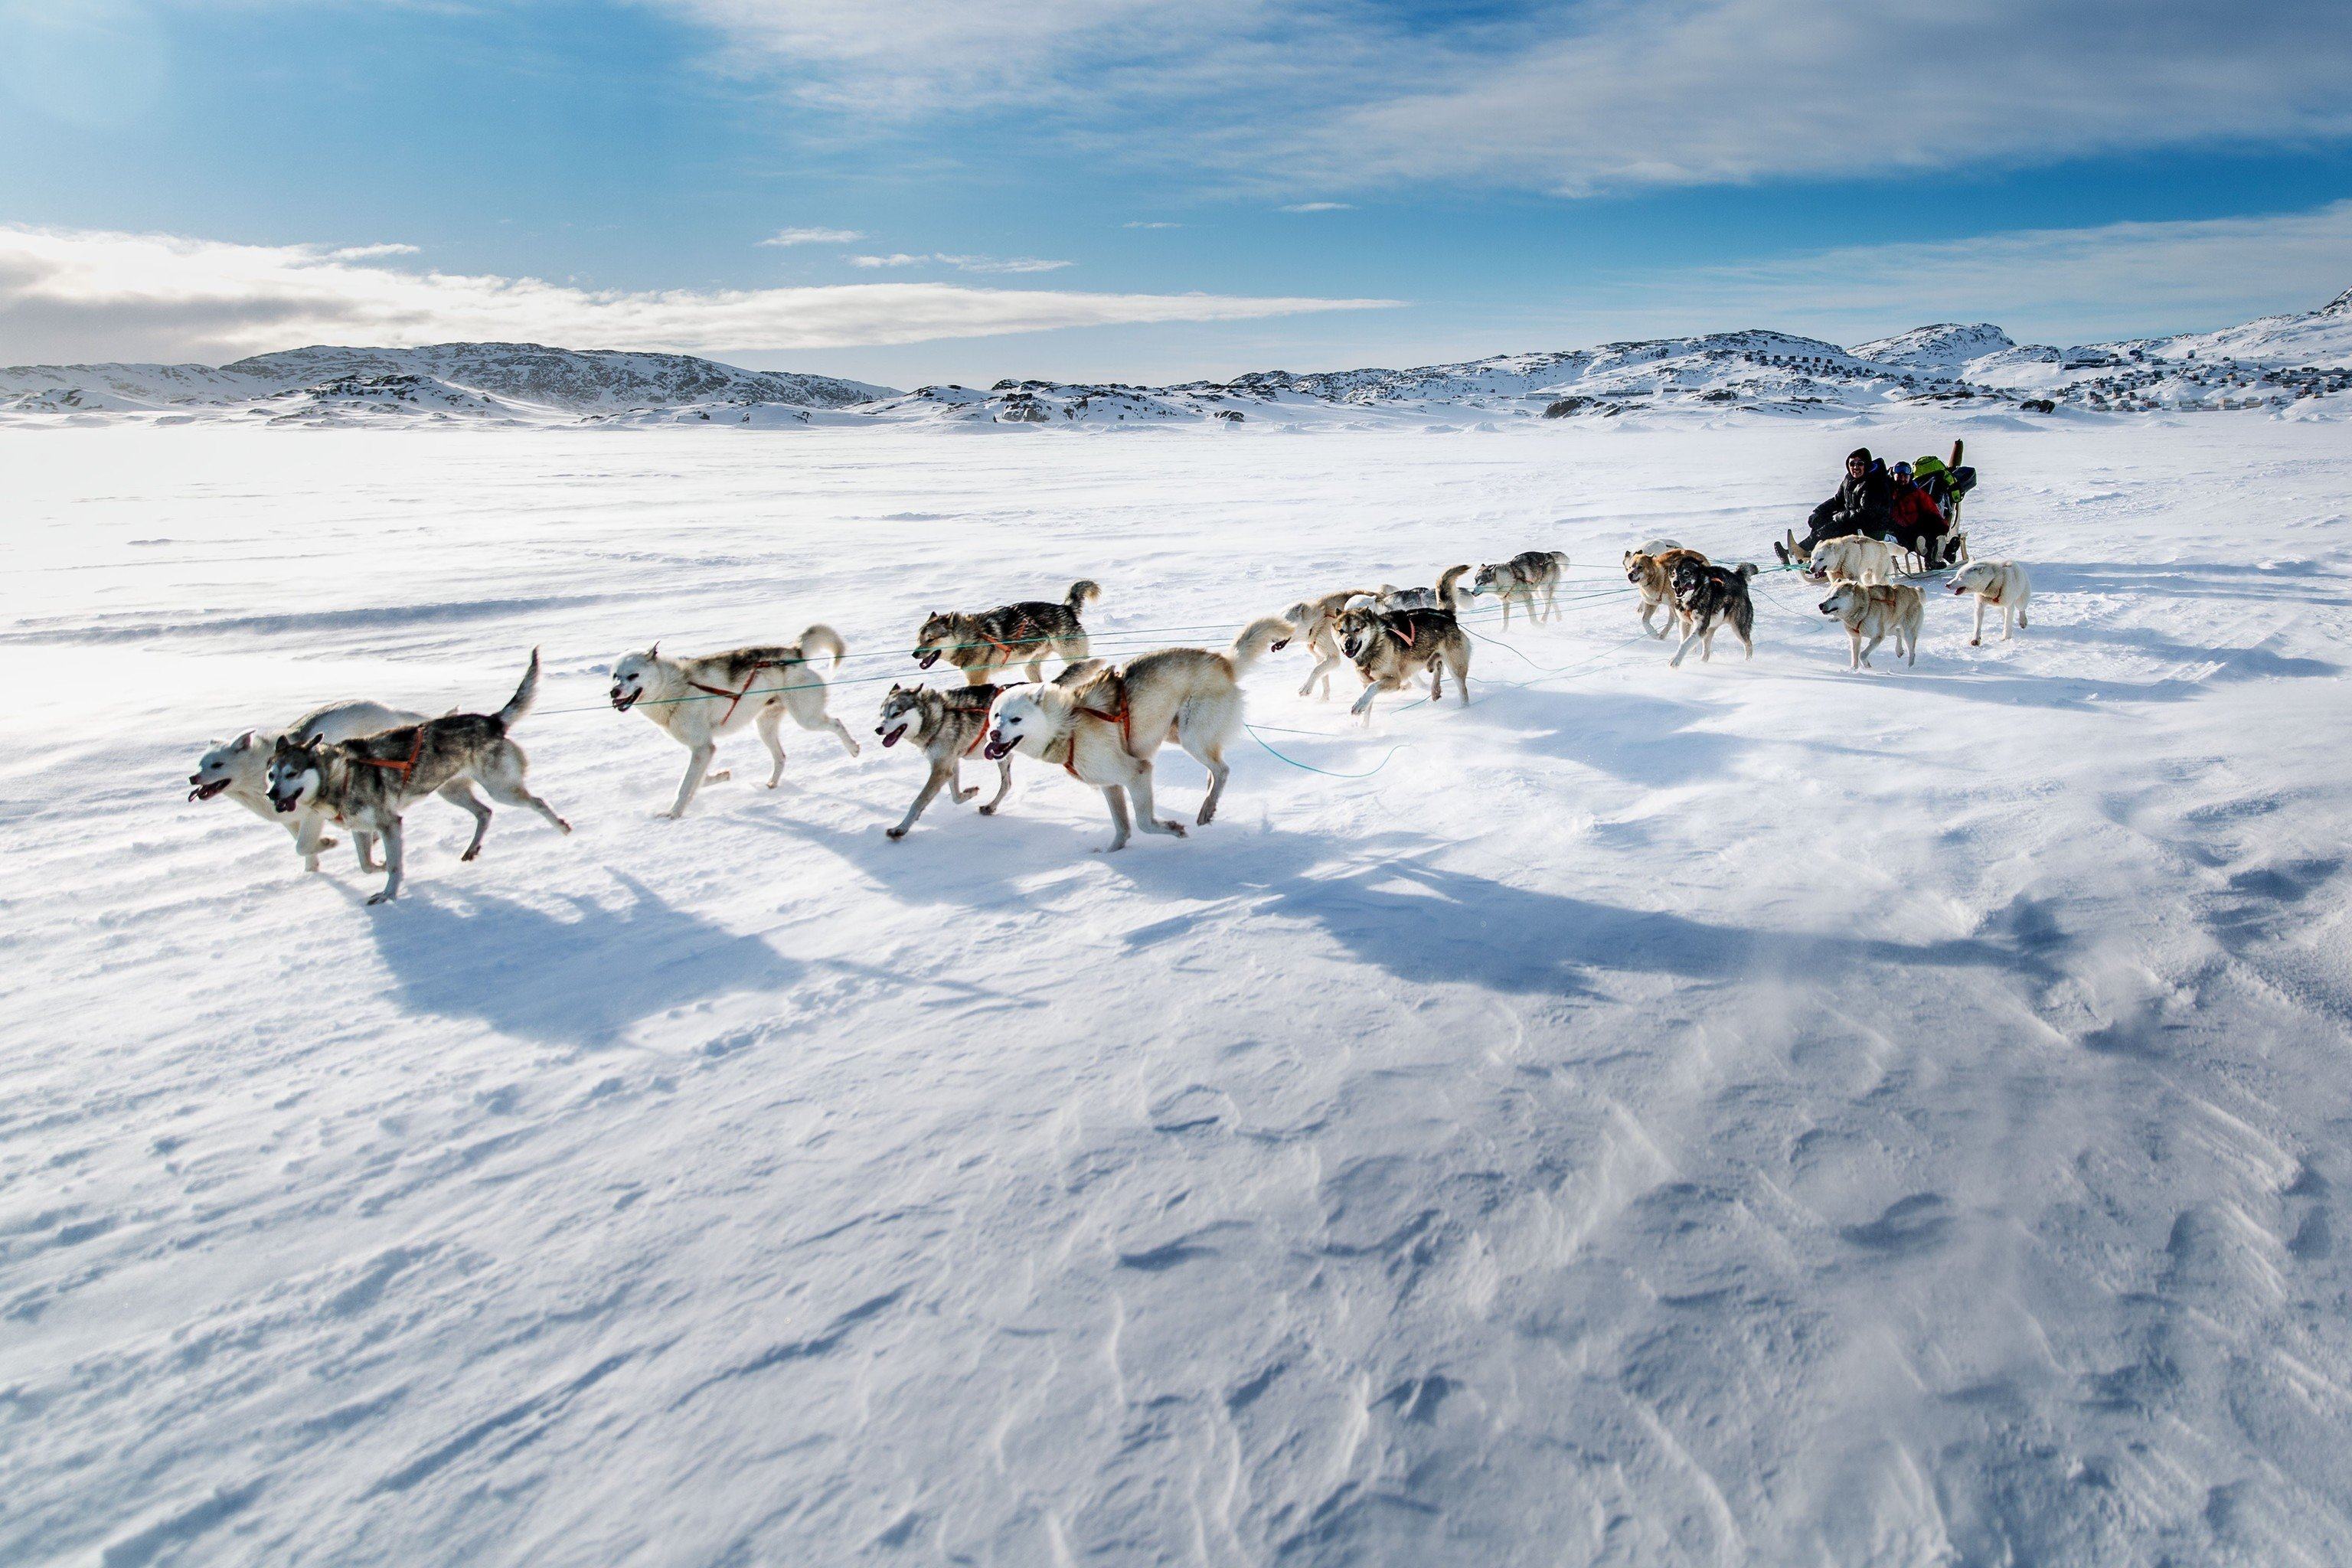 Trip Ideas sky outdoor snow mushing transport dog sled vehicle Winter Dog weather sled season arctic sled dog racing group dog like mammal sled dog